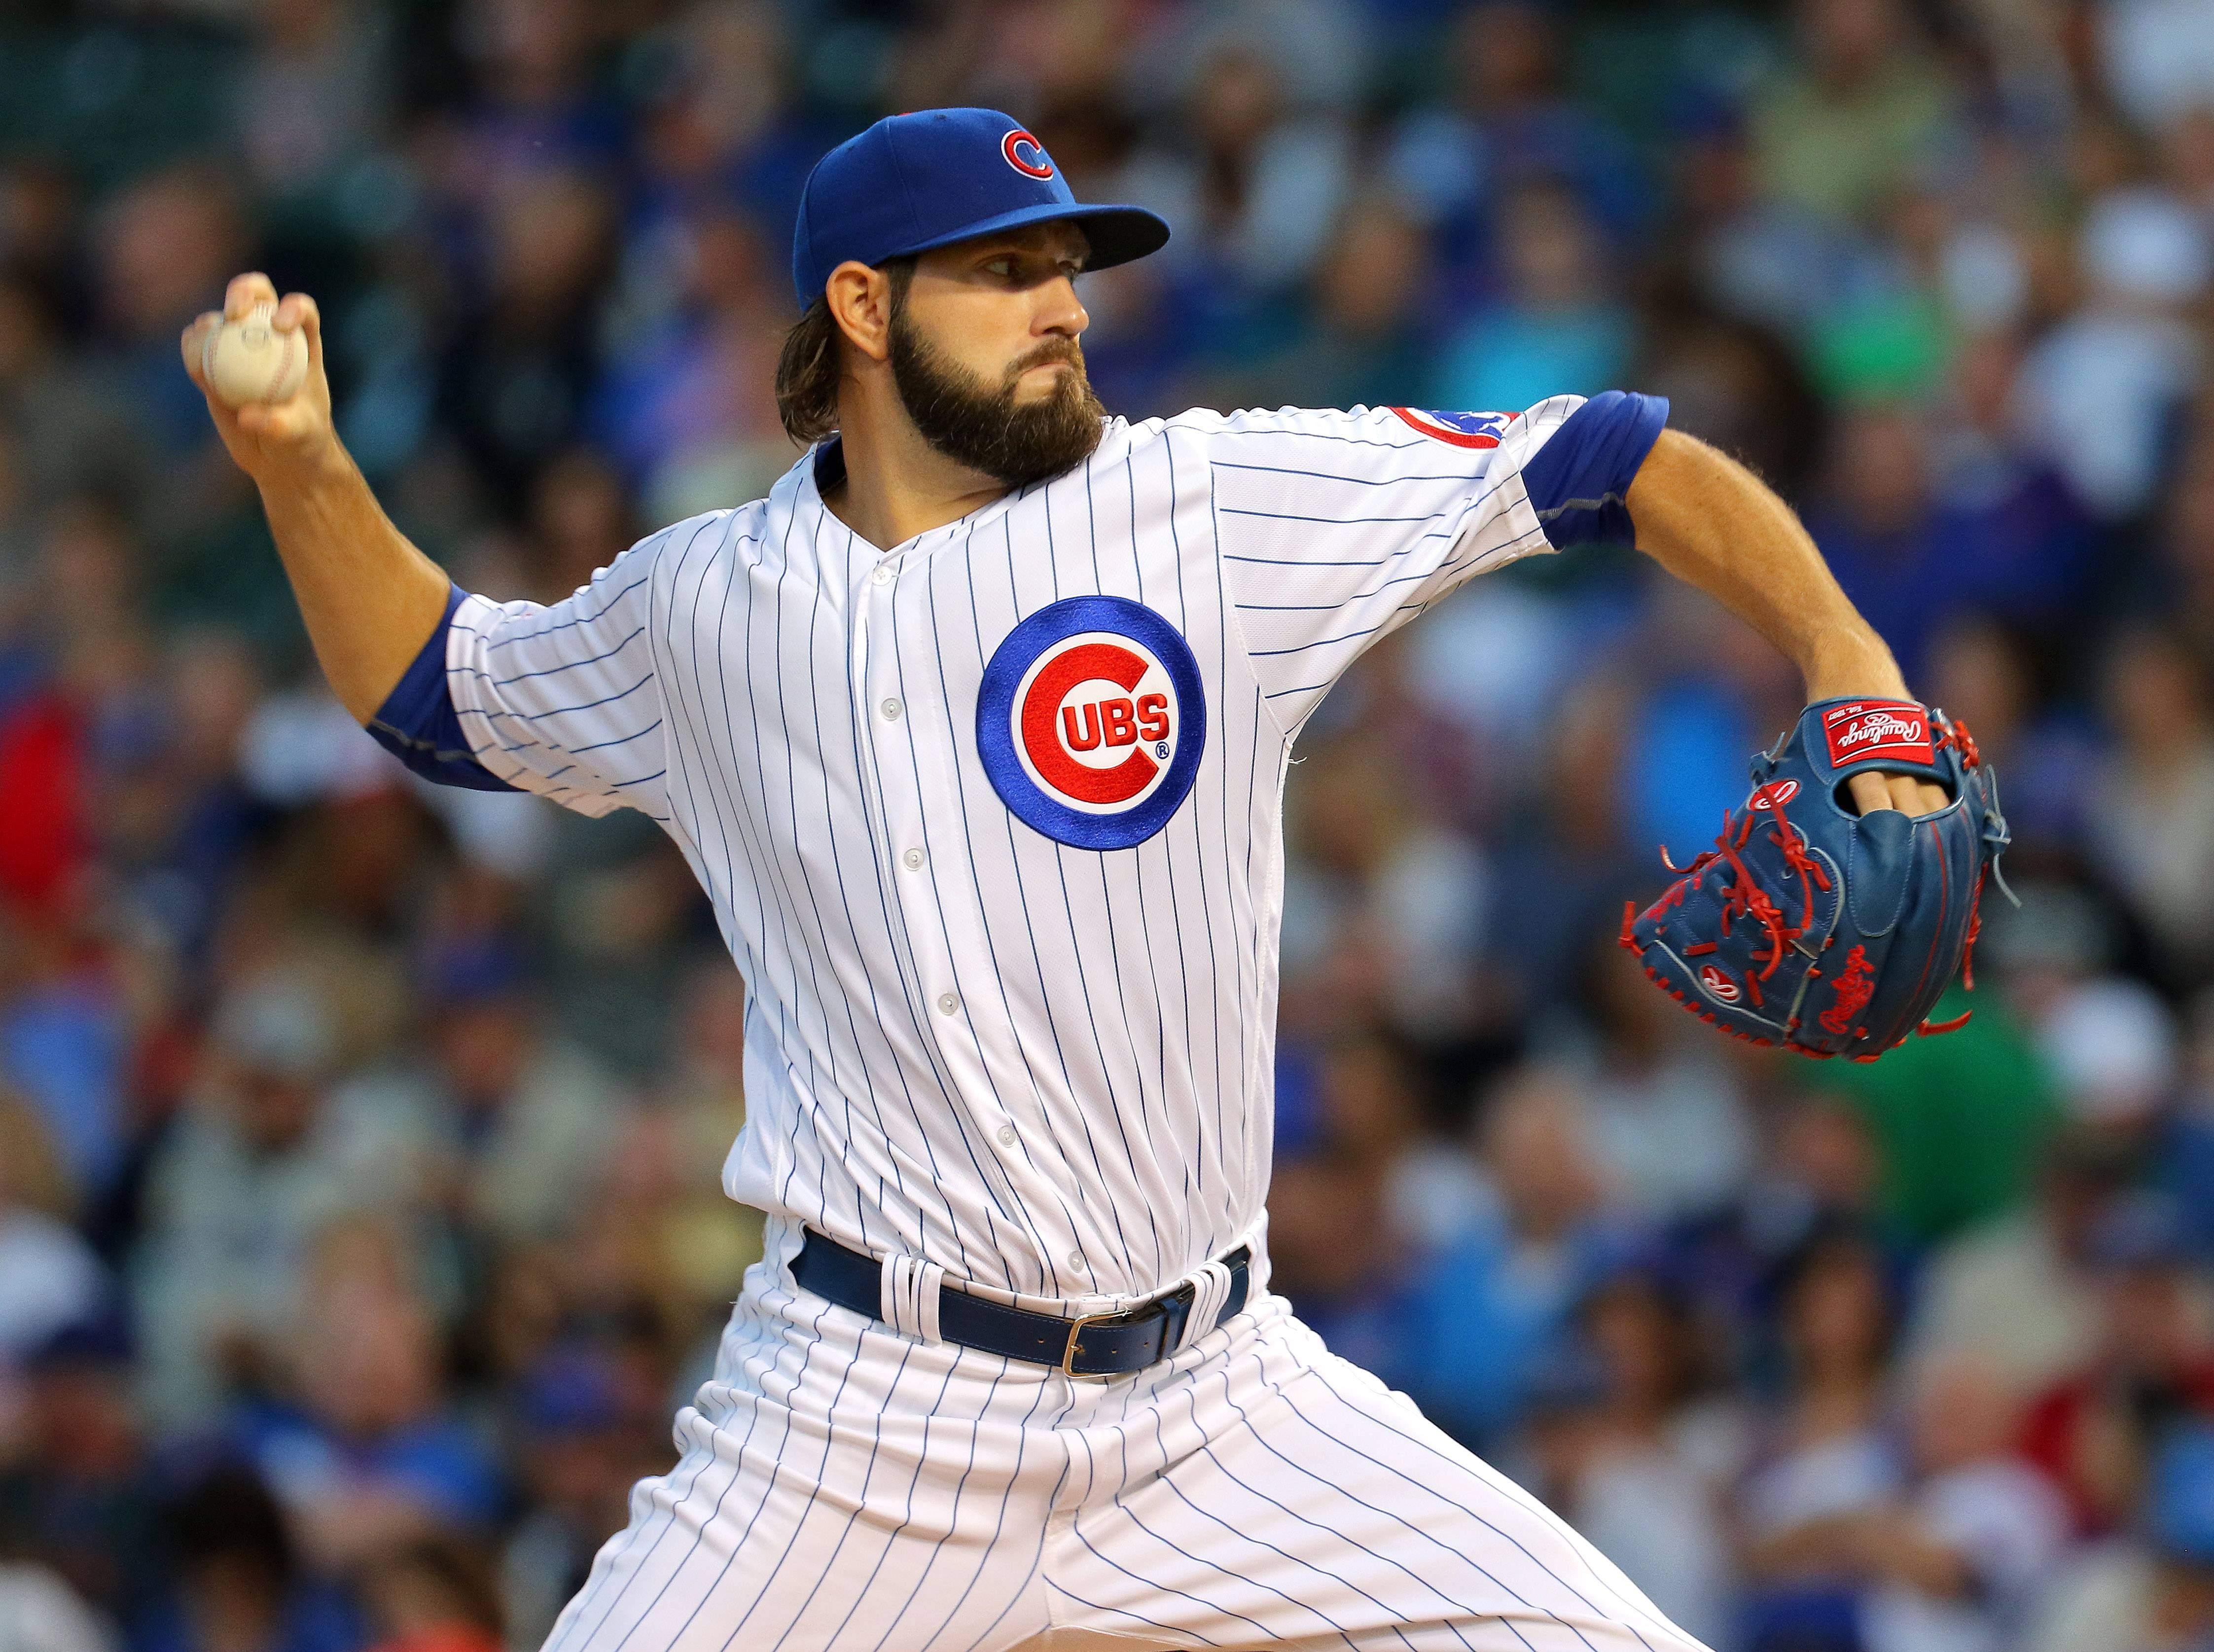 Chicago Cubs starting pitcher Jason Hammel pitches during their game against the Pittsburg Pirates at Wrigley Field in Chicago Wednesday, August 31, 2016.